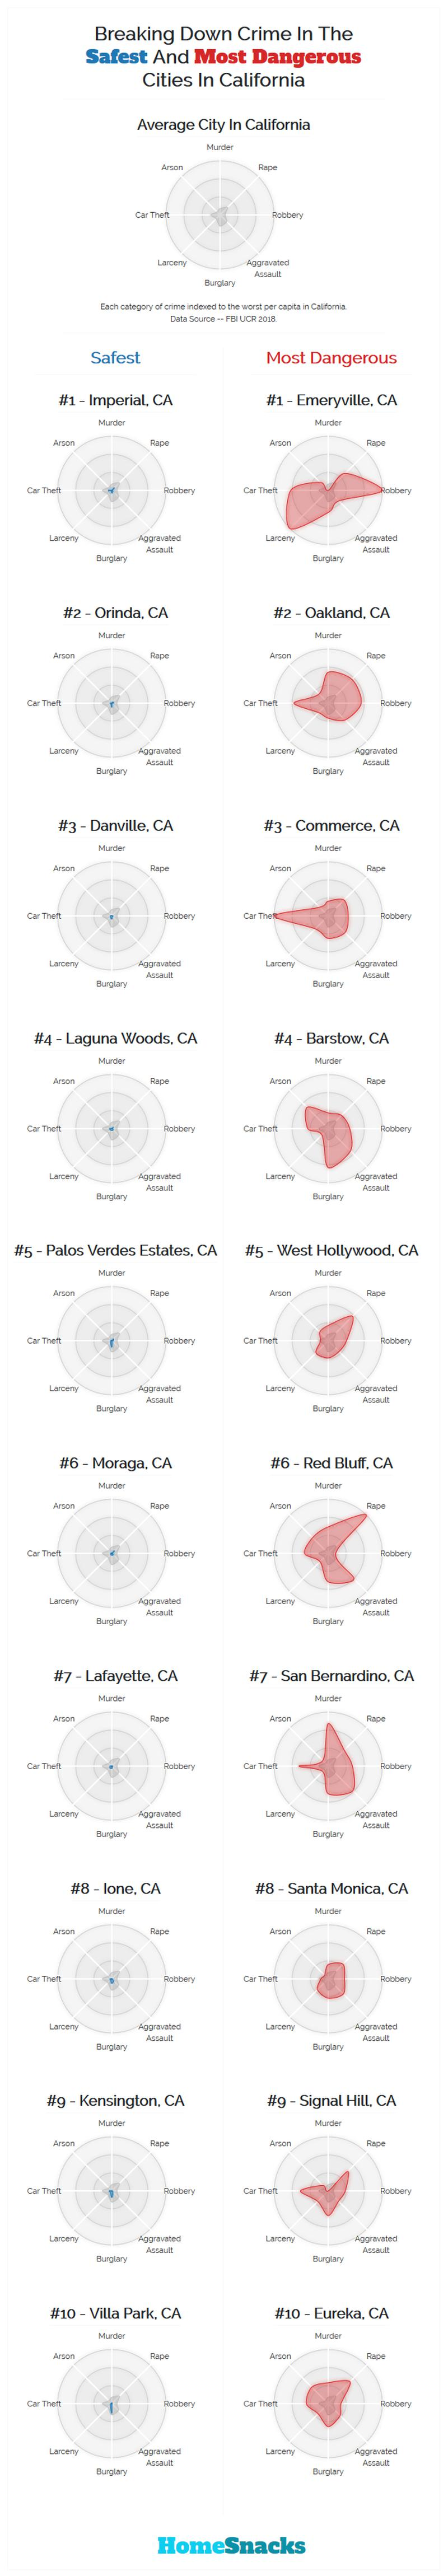 Safest Cities in California Breakdown